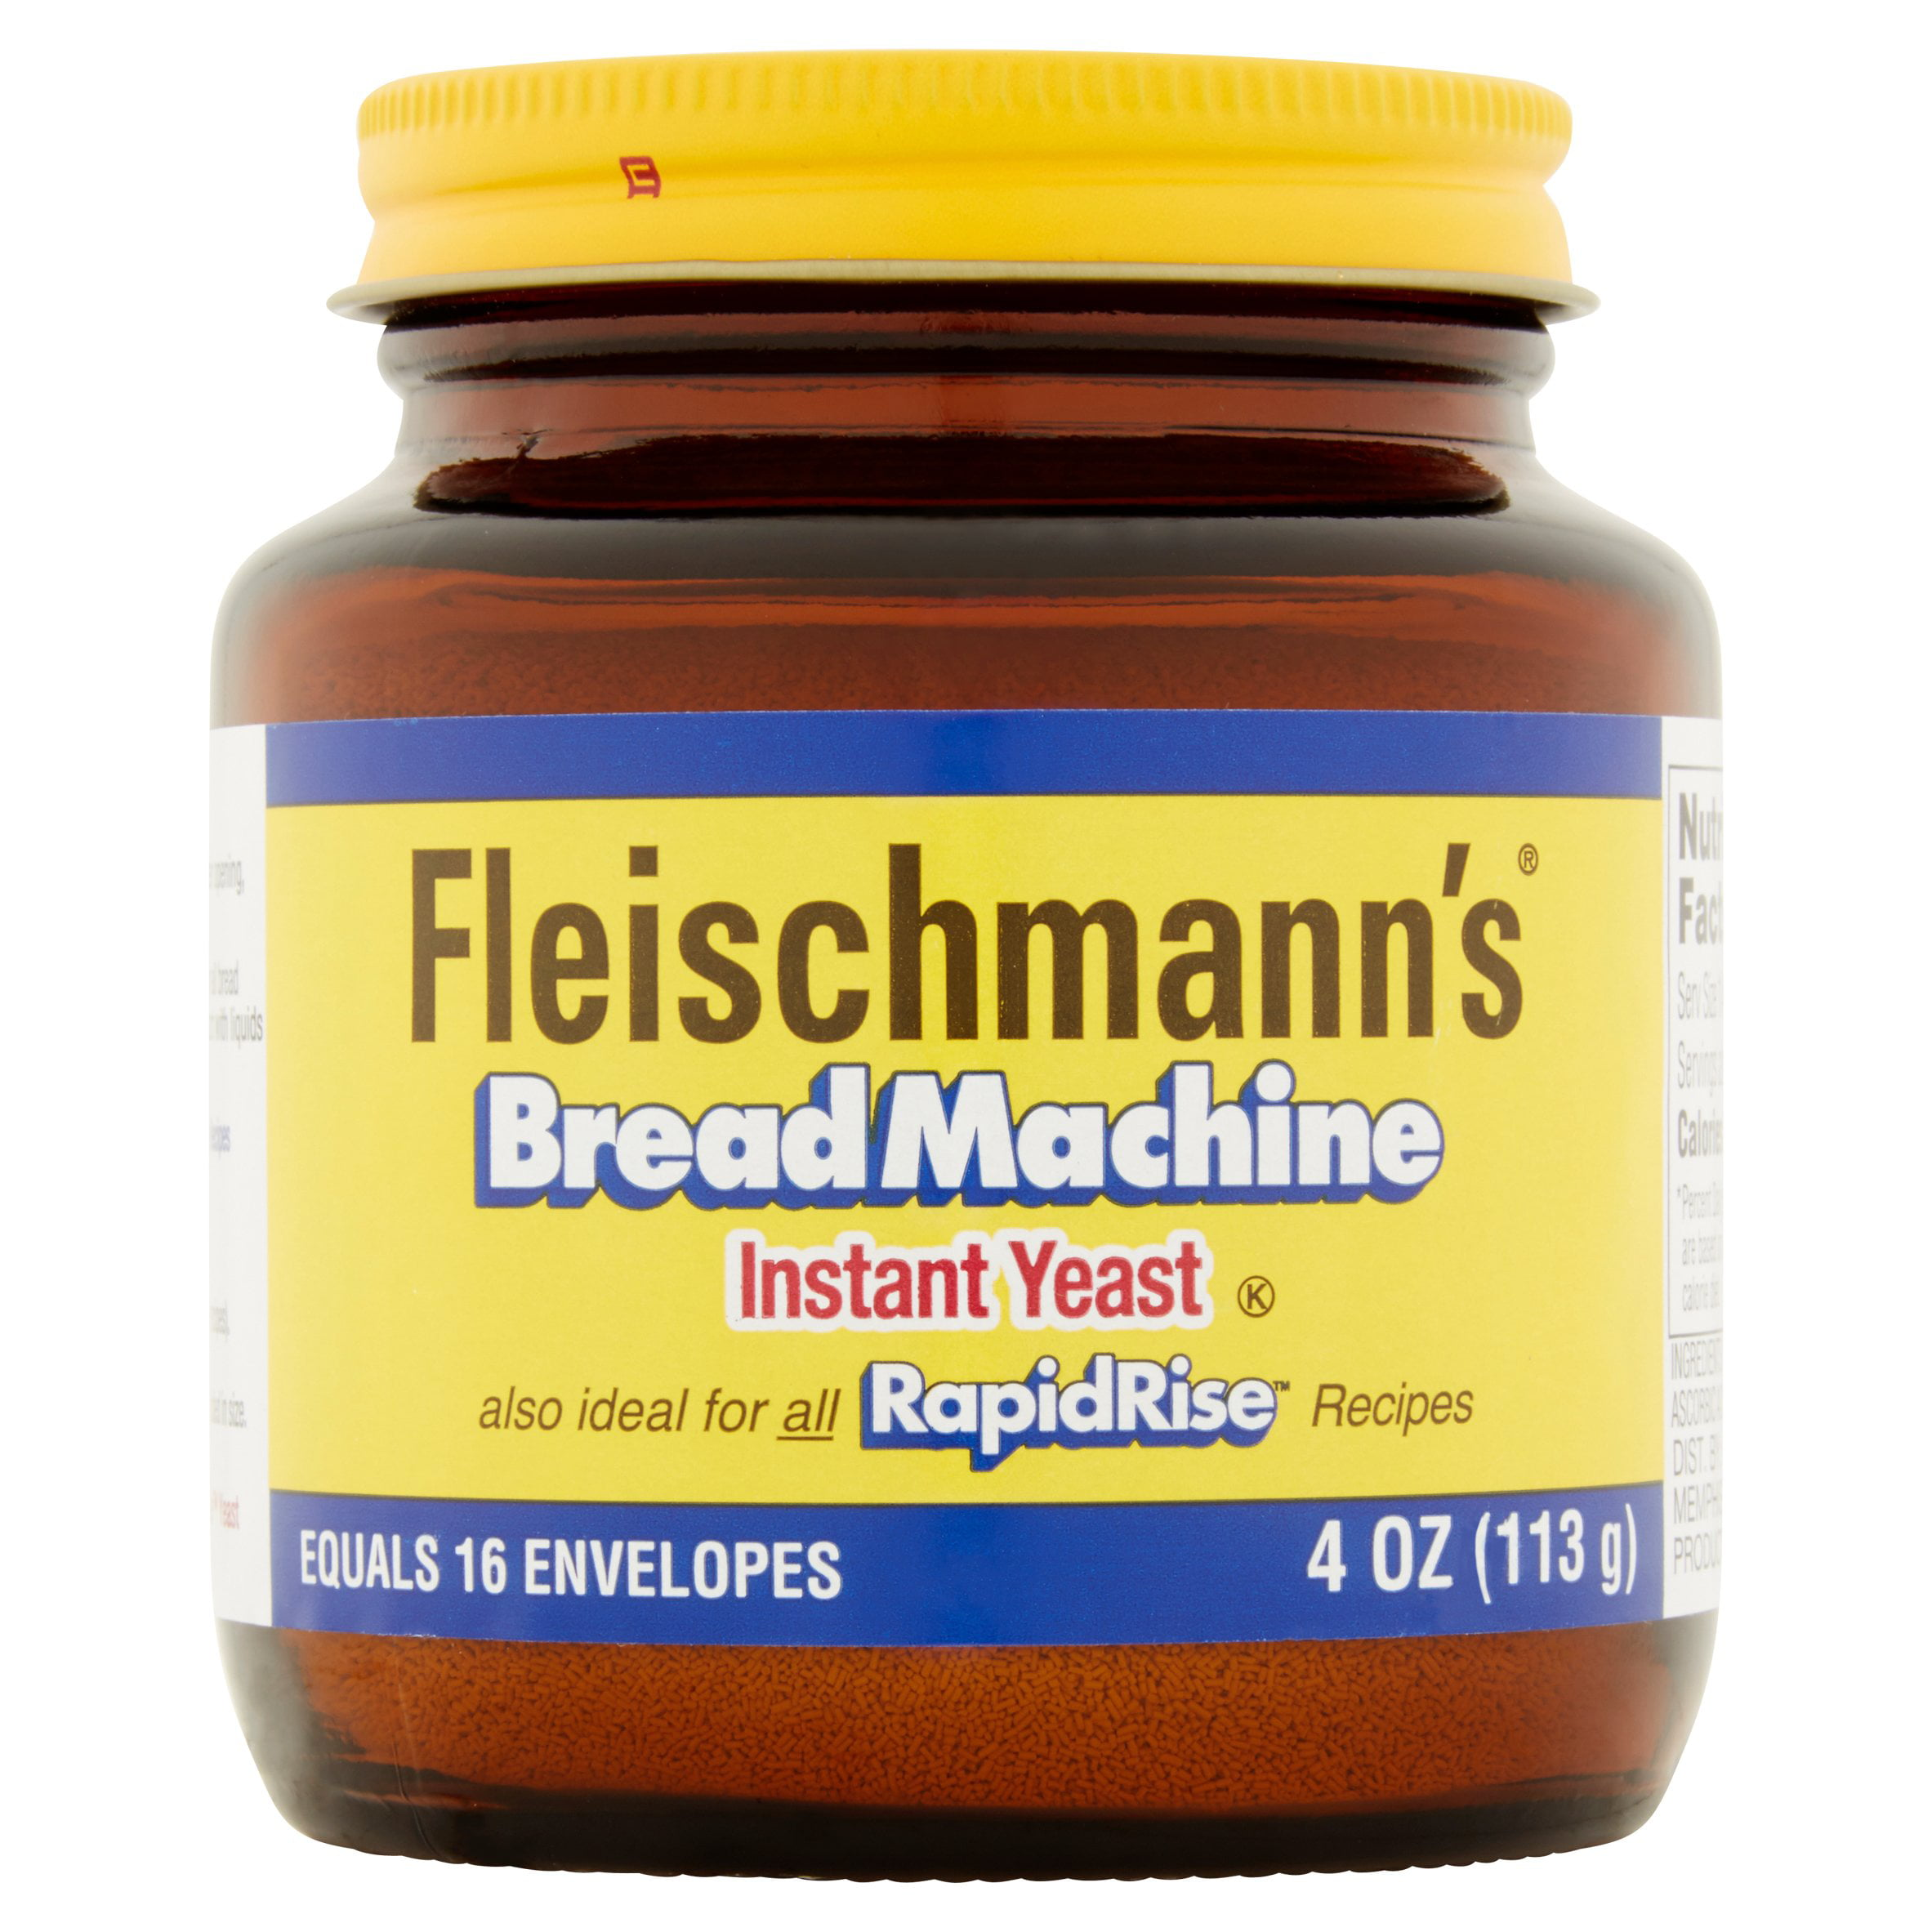 Fleischmann's Bread Machine Instant Yeast, 4.0 OZ by ACH Food Companies, Inc.